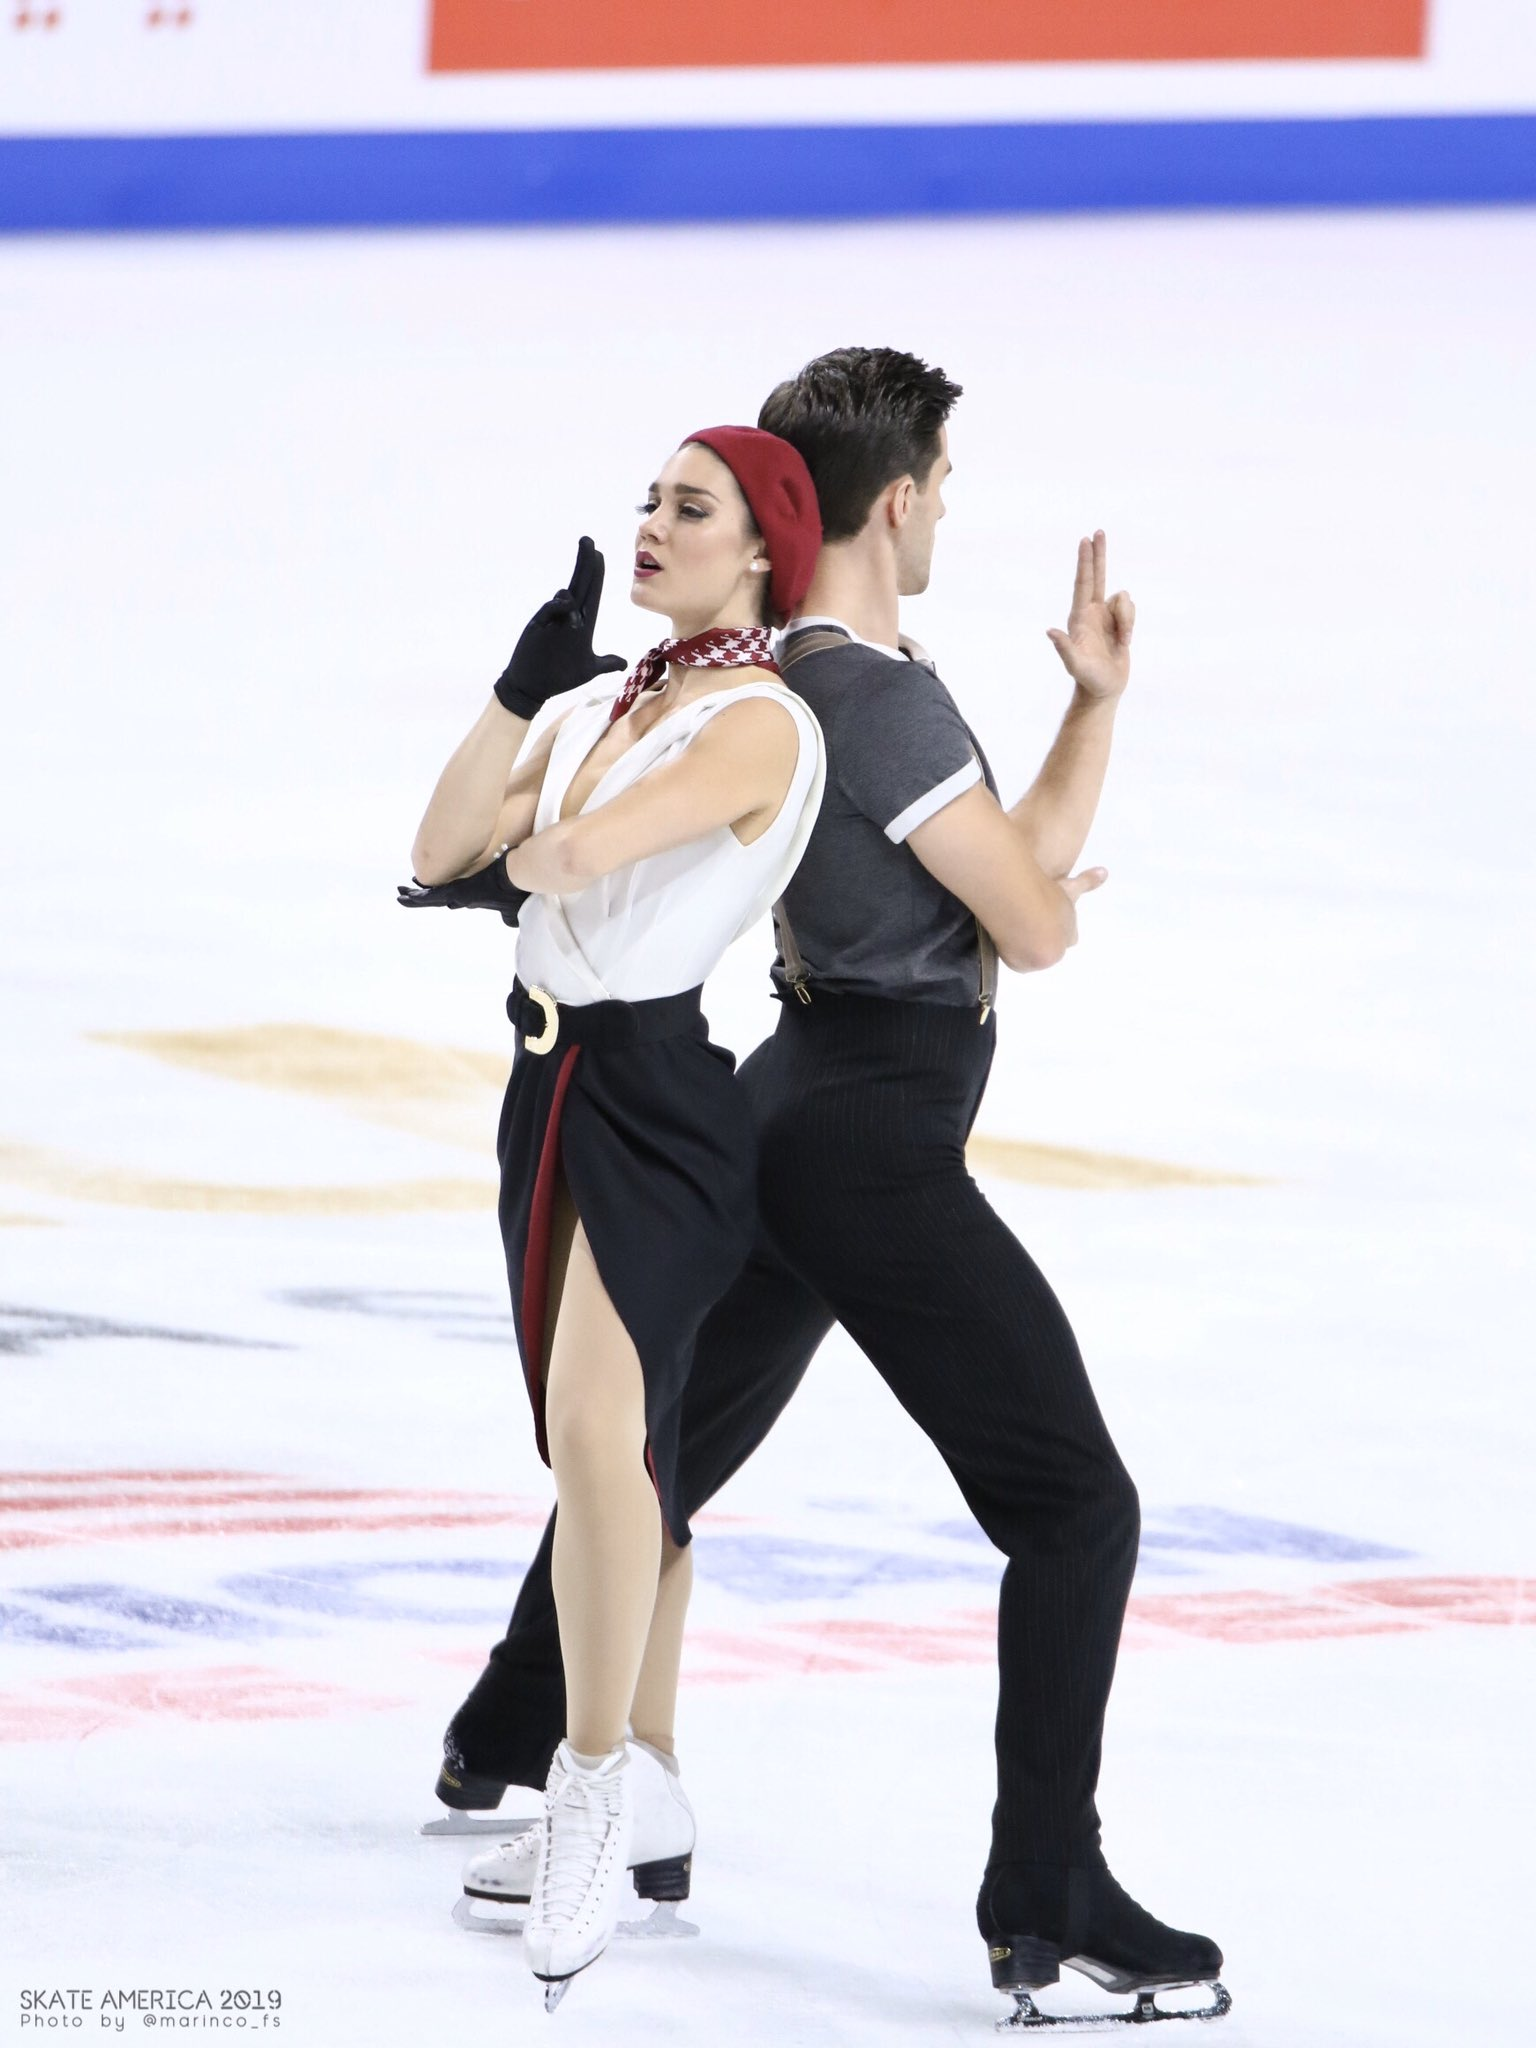 GP - 1 этап. Skate America Las Vegas, NV / USA October 18-20, 2019   - Страница 4 EHJQNcpUwAA8GF3?format=jpg&name=4096x4096